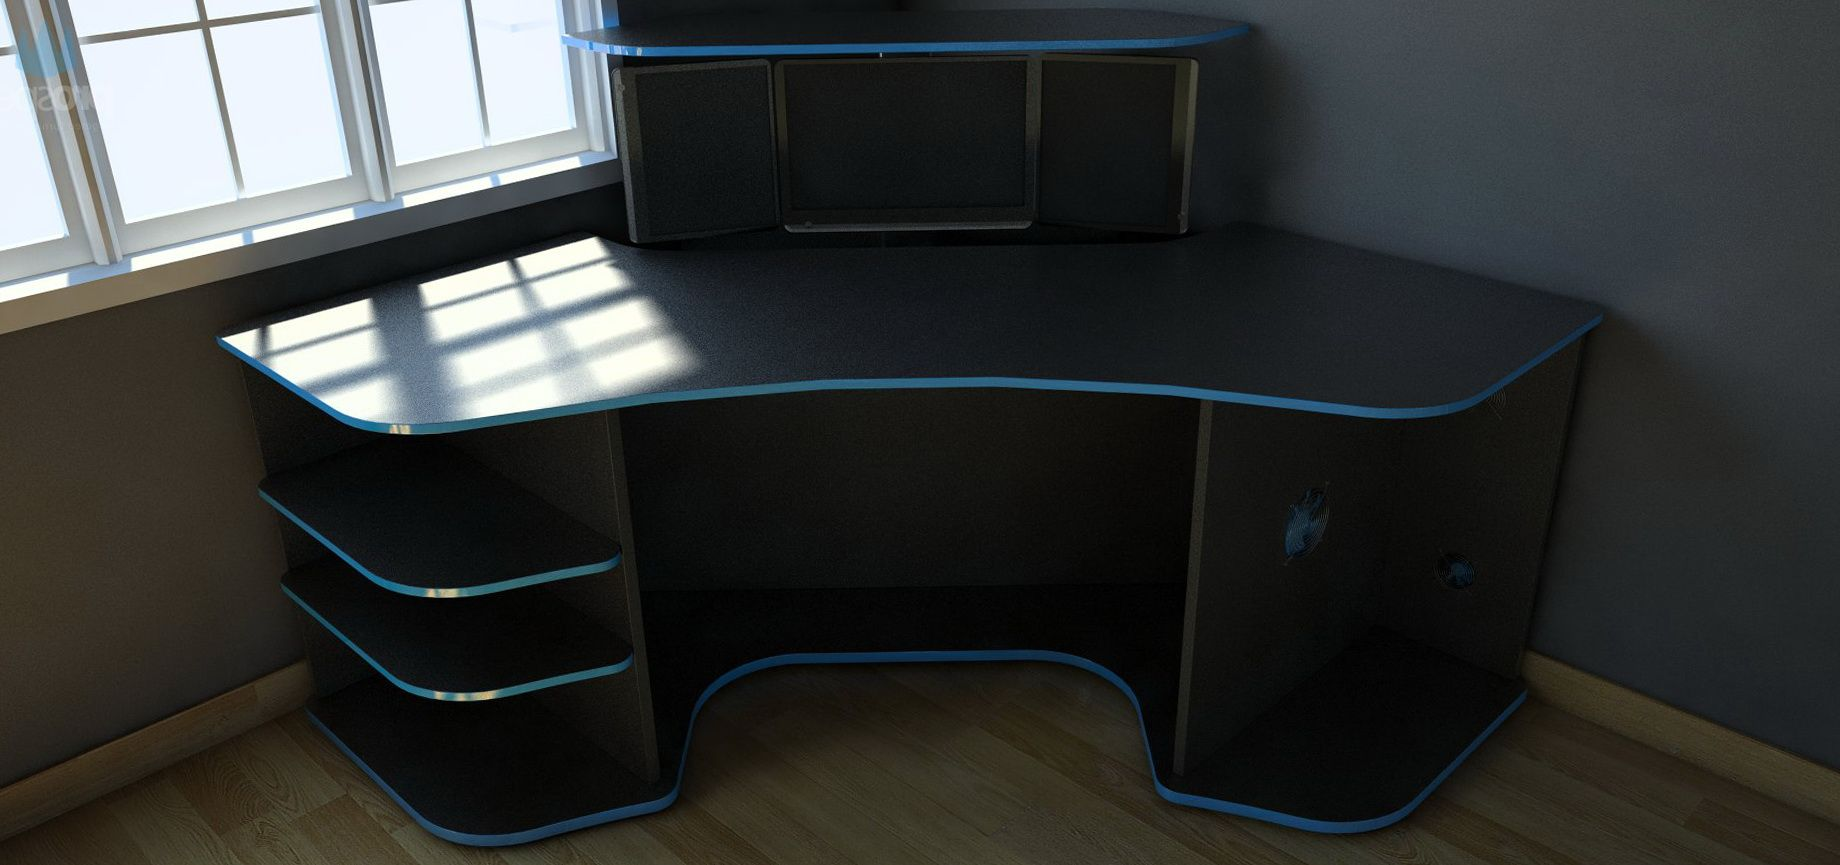 gaming desk Paragon Gaming Desk Price (With images